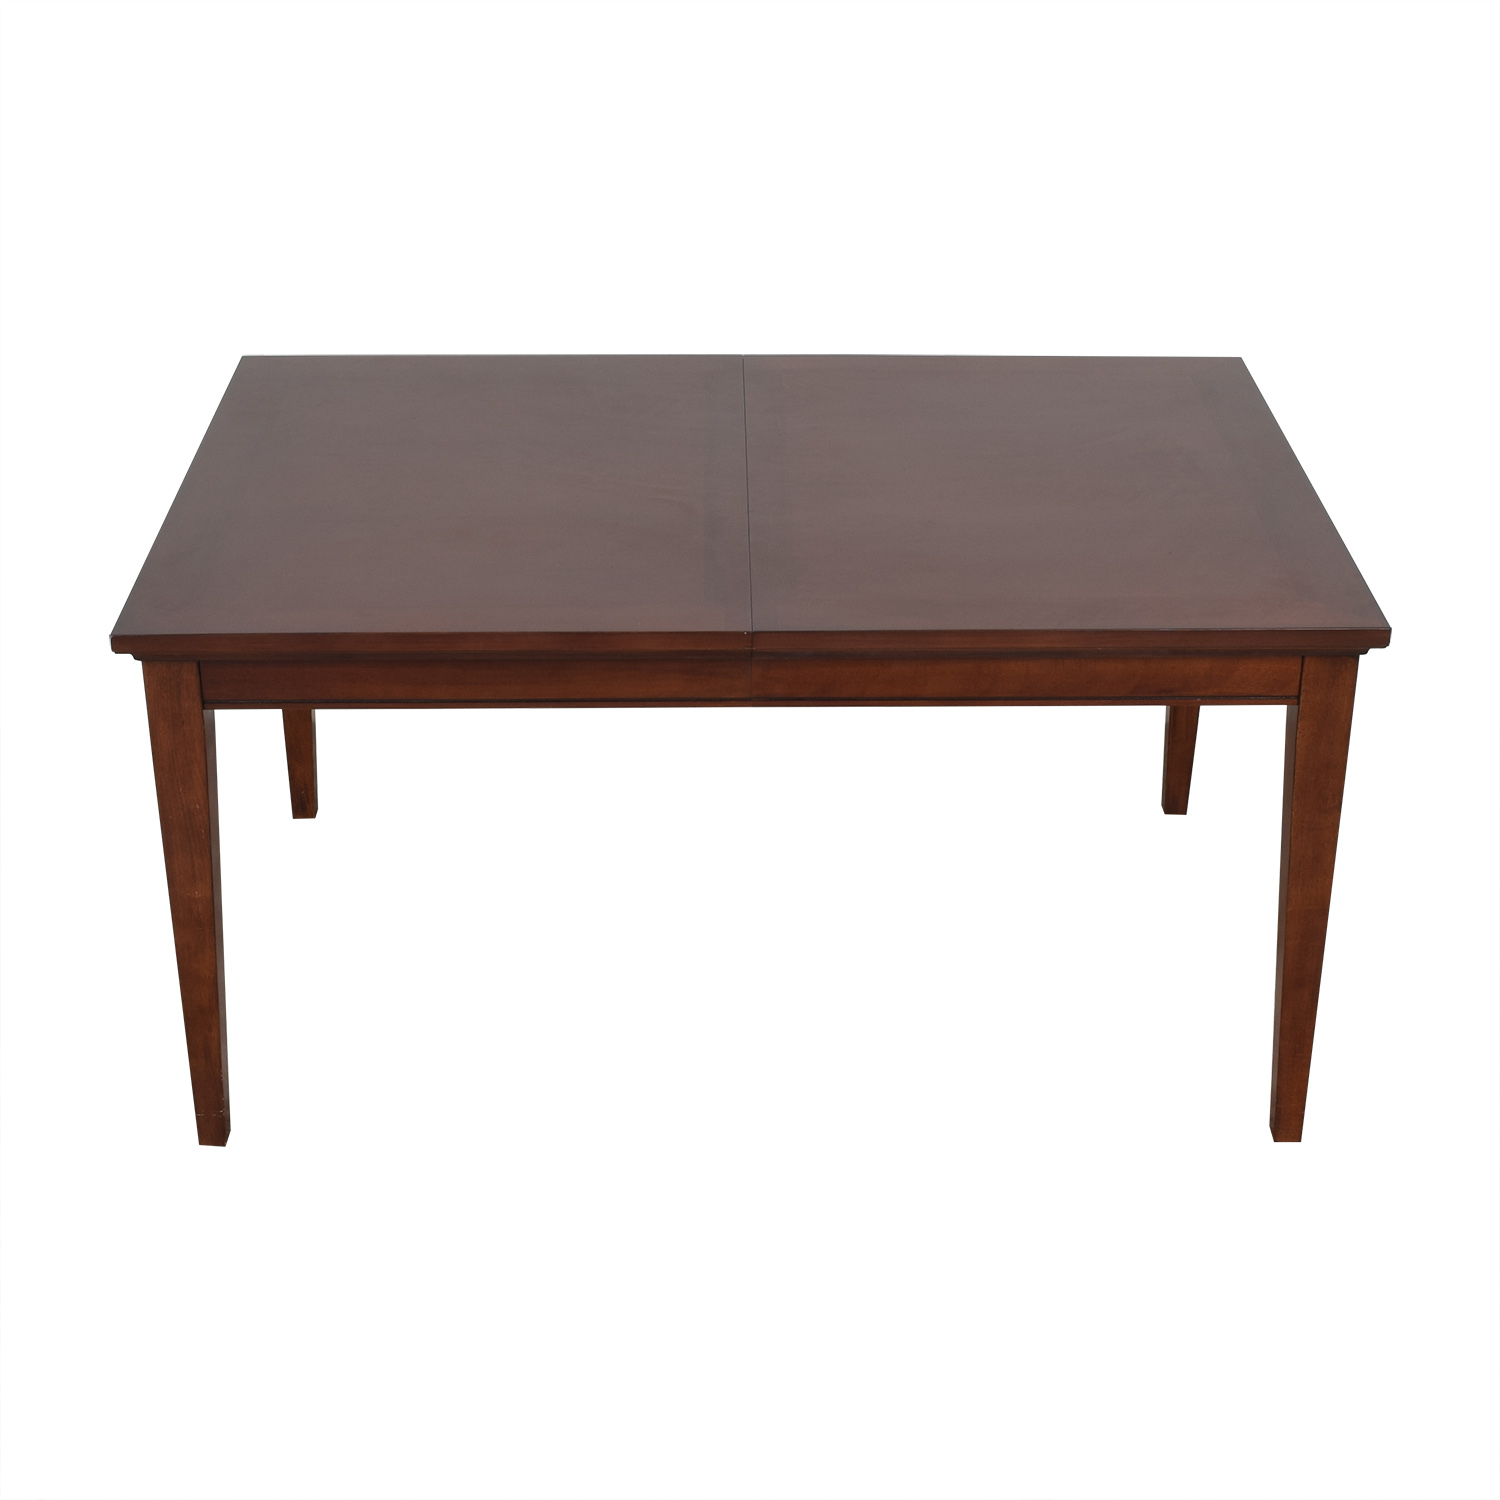 buy Legacy Classic Furniture Legacy Classic Funiture Dining Table online